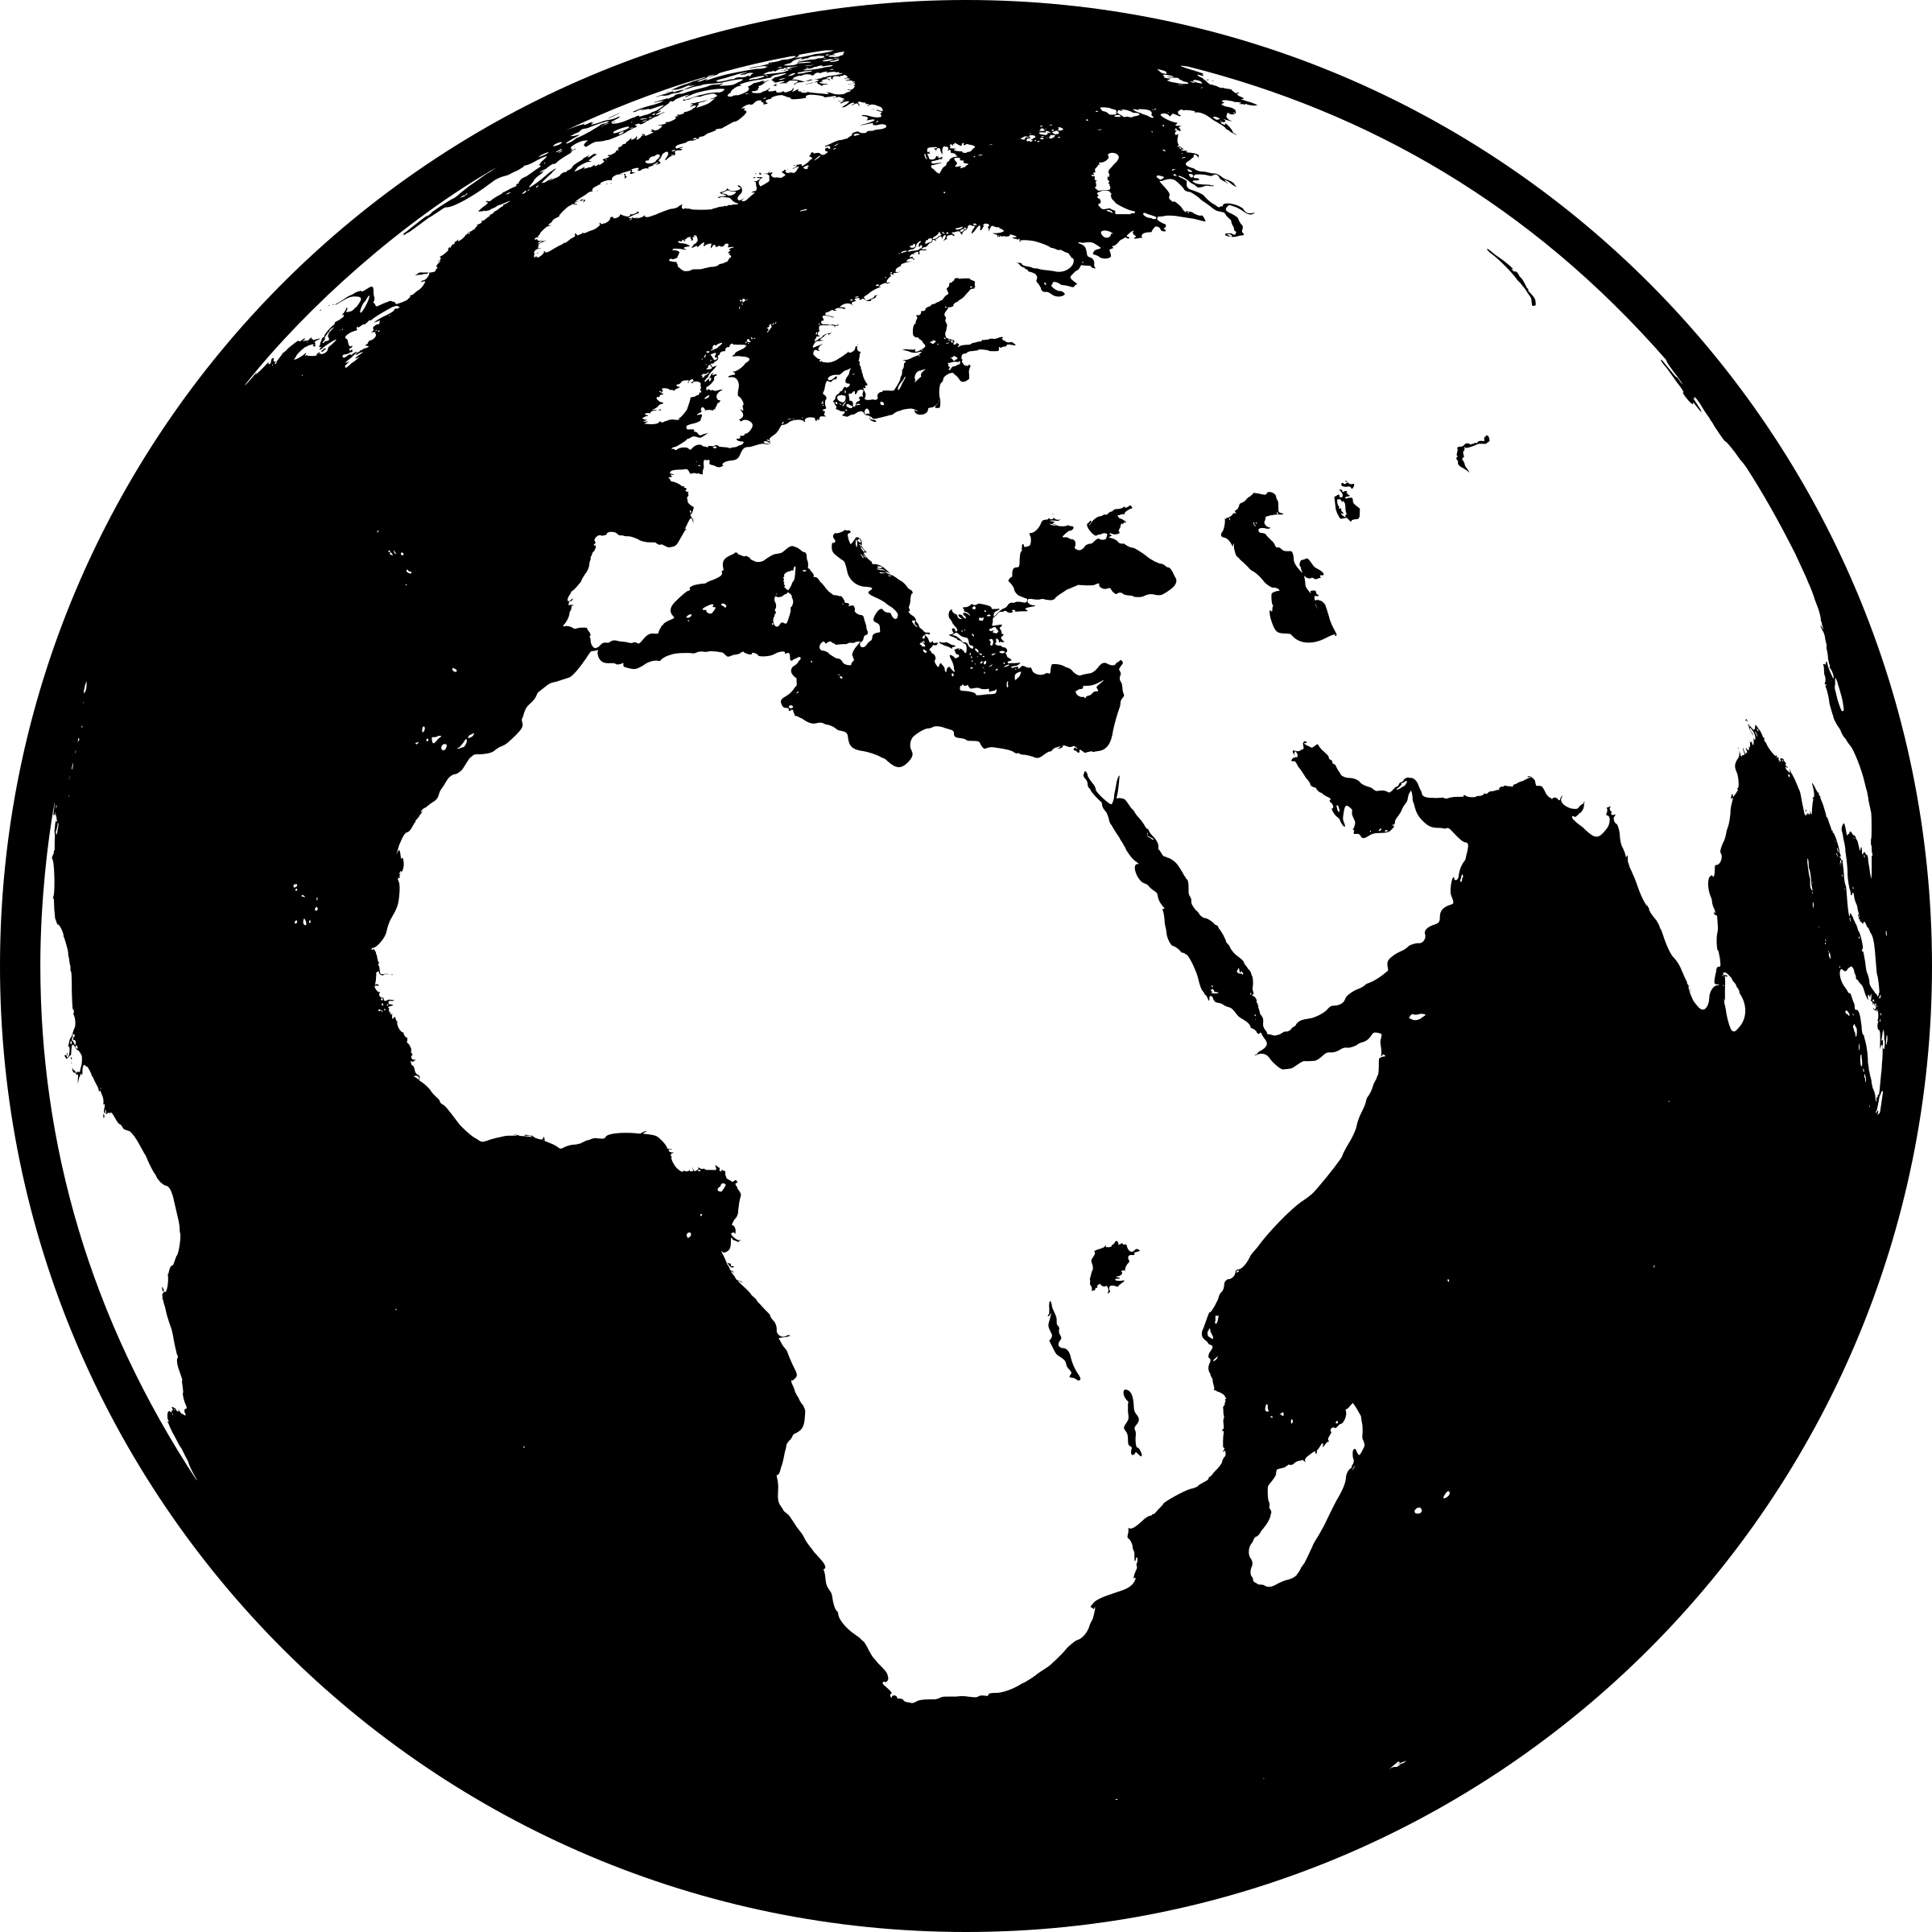 Globe showing Africa, Asia and Europe in black and white (detailed) by brylie